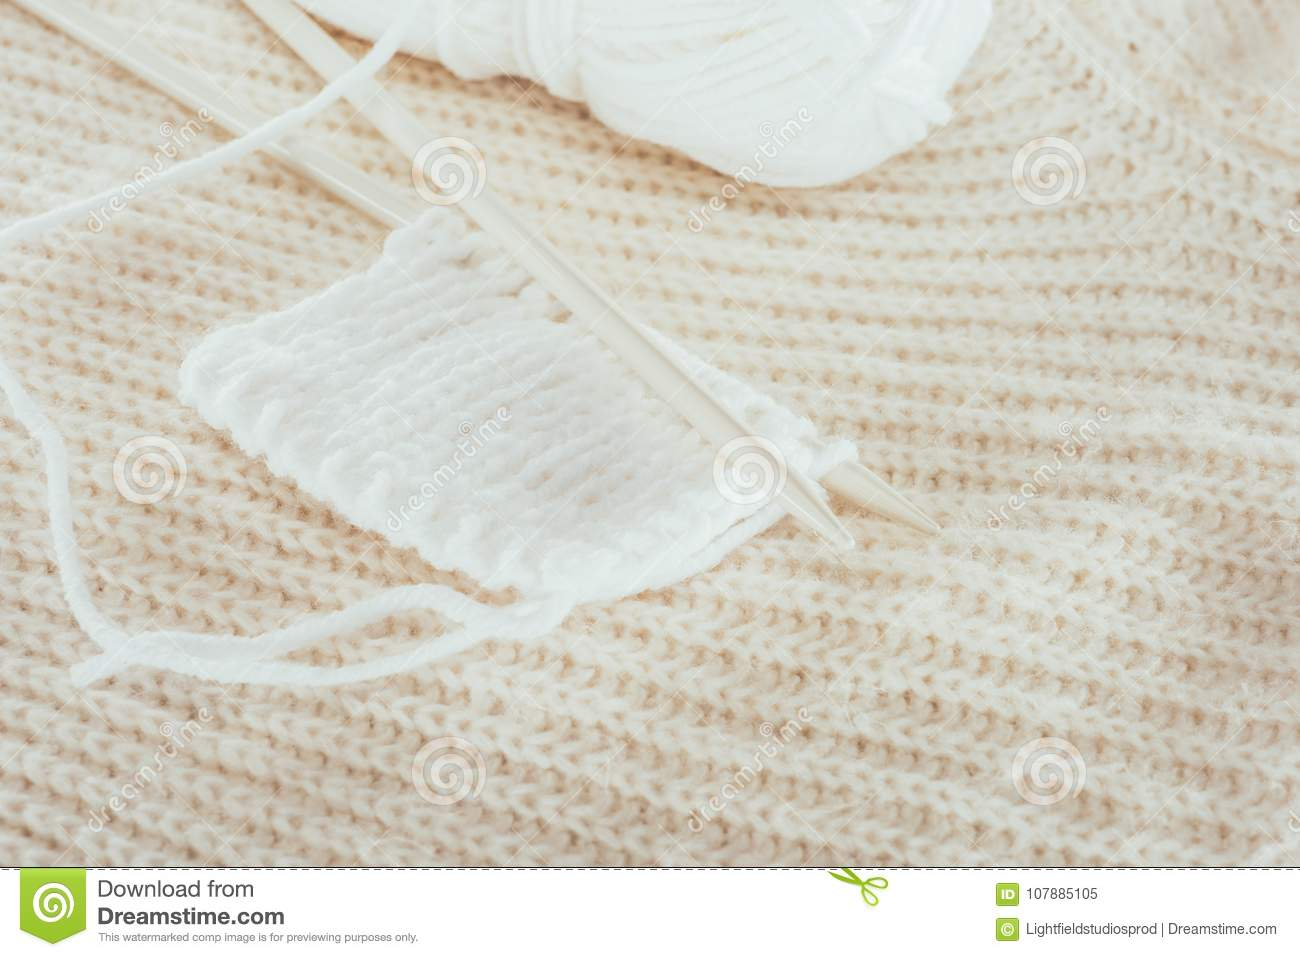 Knitting needles with white woolen yarn